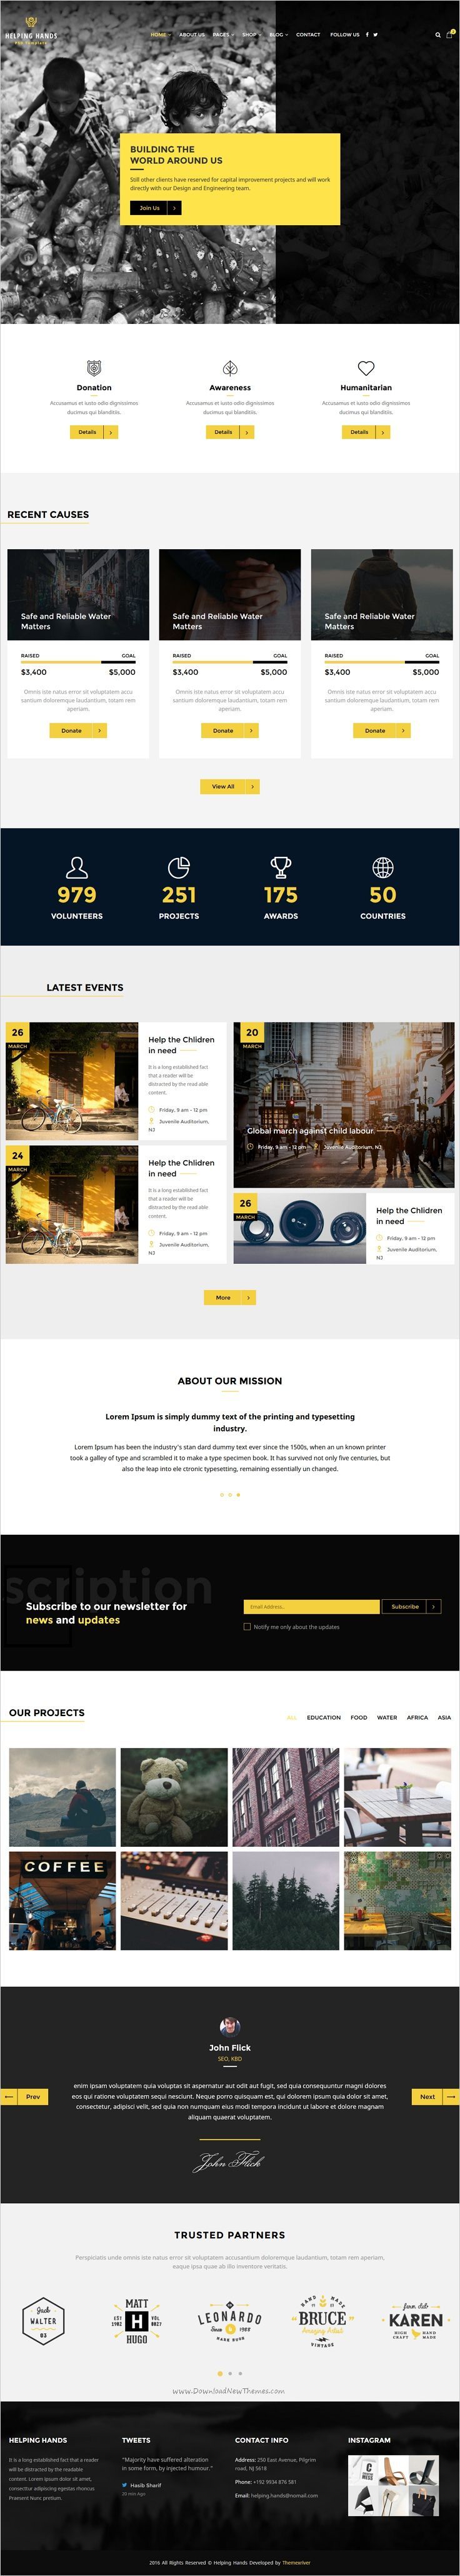 Helping hands is a beautifully design Bootstrap #HTML #theme for charity and non-profit #organization website with 3 amazing homepage layouts download now➯ https://themeforest.net/item/helping-hands-multipurpose-nonprofit-html-template/17130511?ref=Datasata